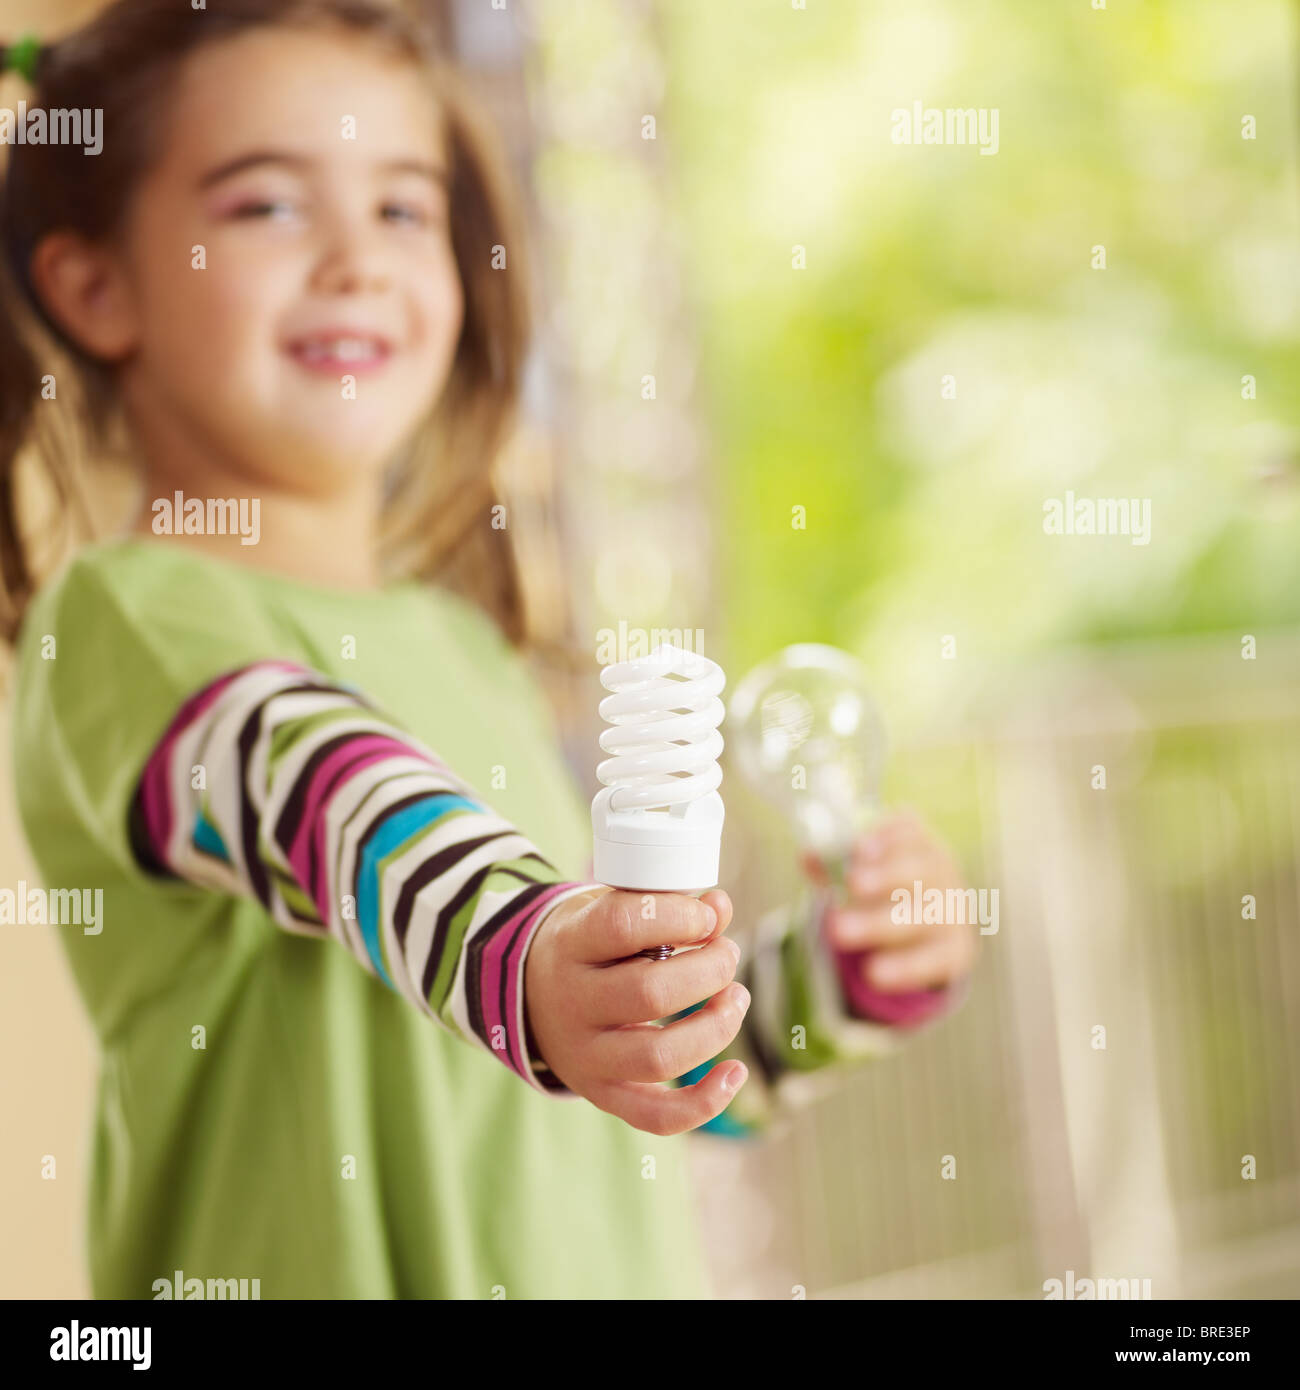 Girl holding light bulb and smiling. Selective focus, copy space - Stock Image